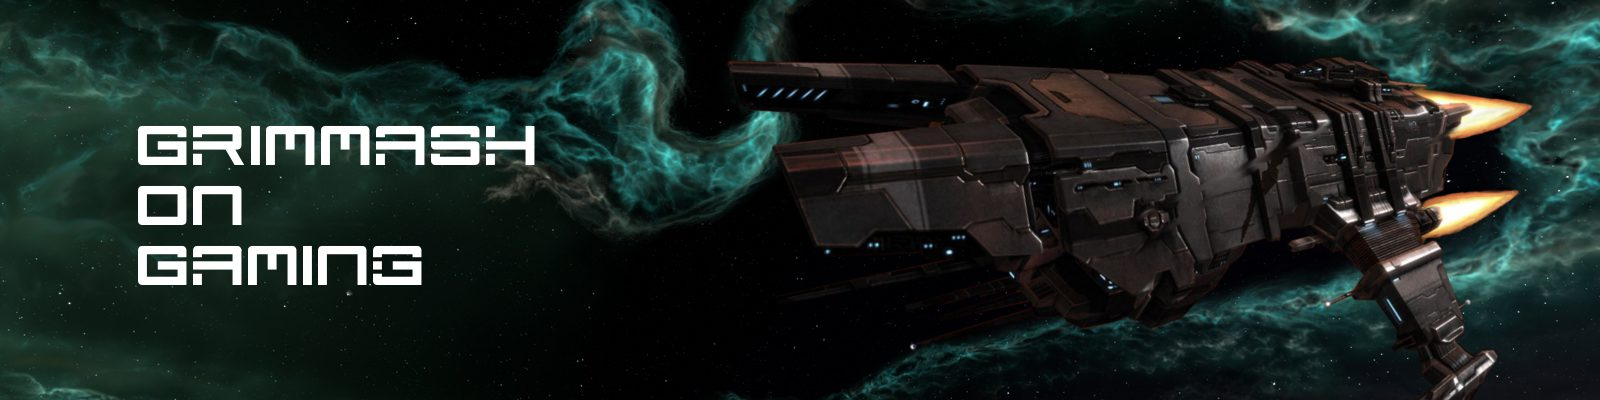 Eve Online Resources – Grimmash on Gaming on